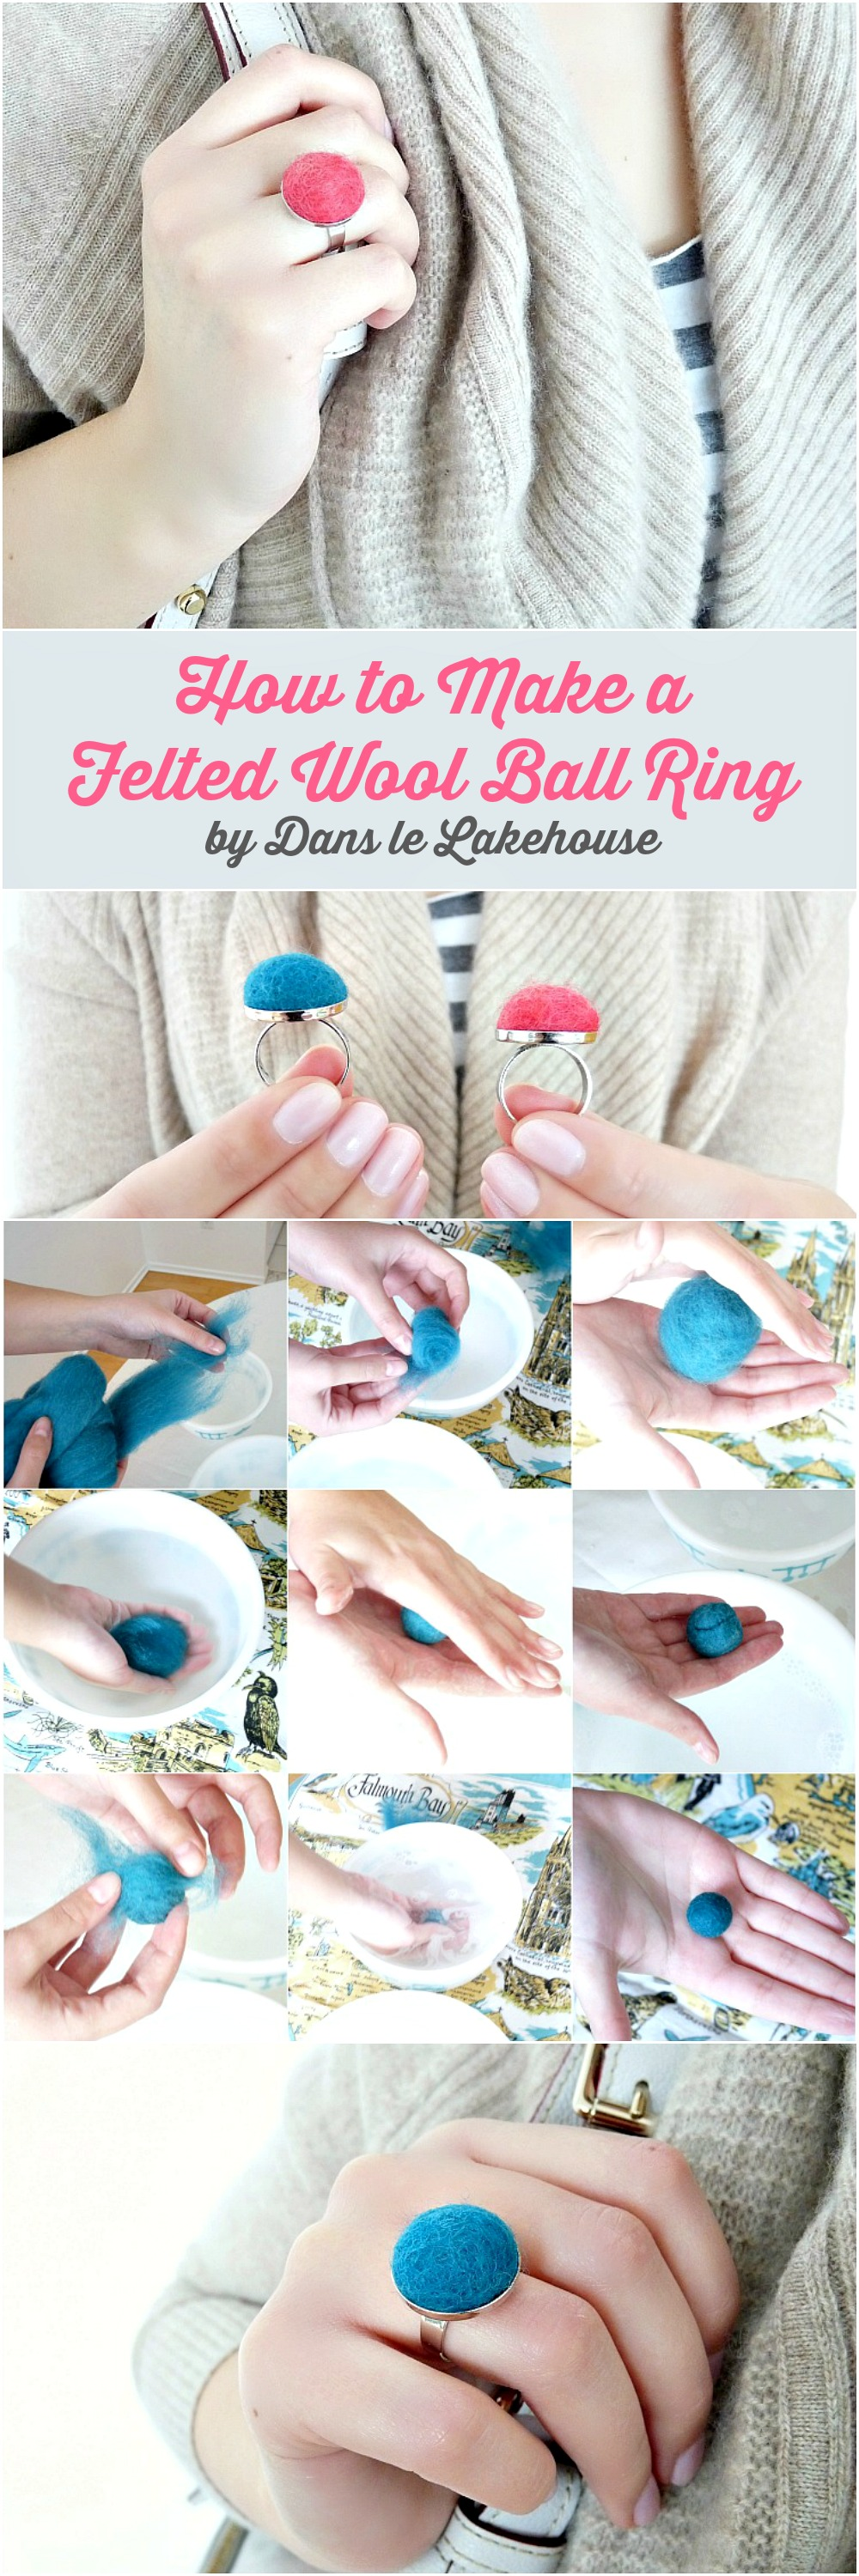 How to make felted wool ball rings - Great tutorial and tons of other project ideas for felted balls